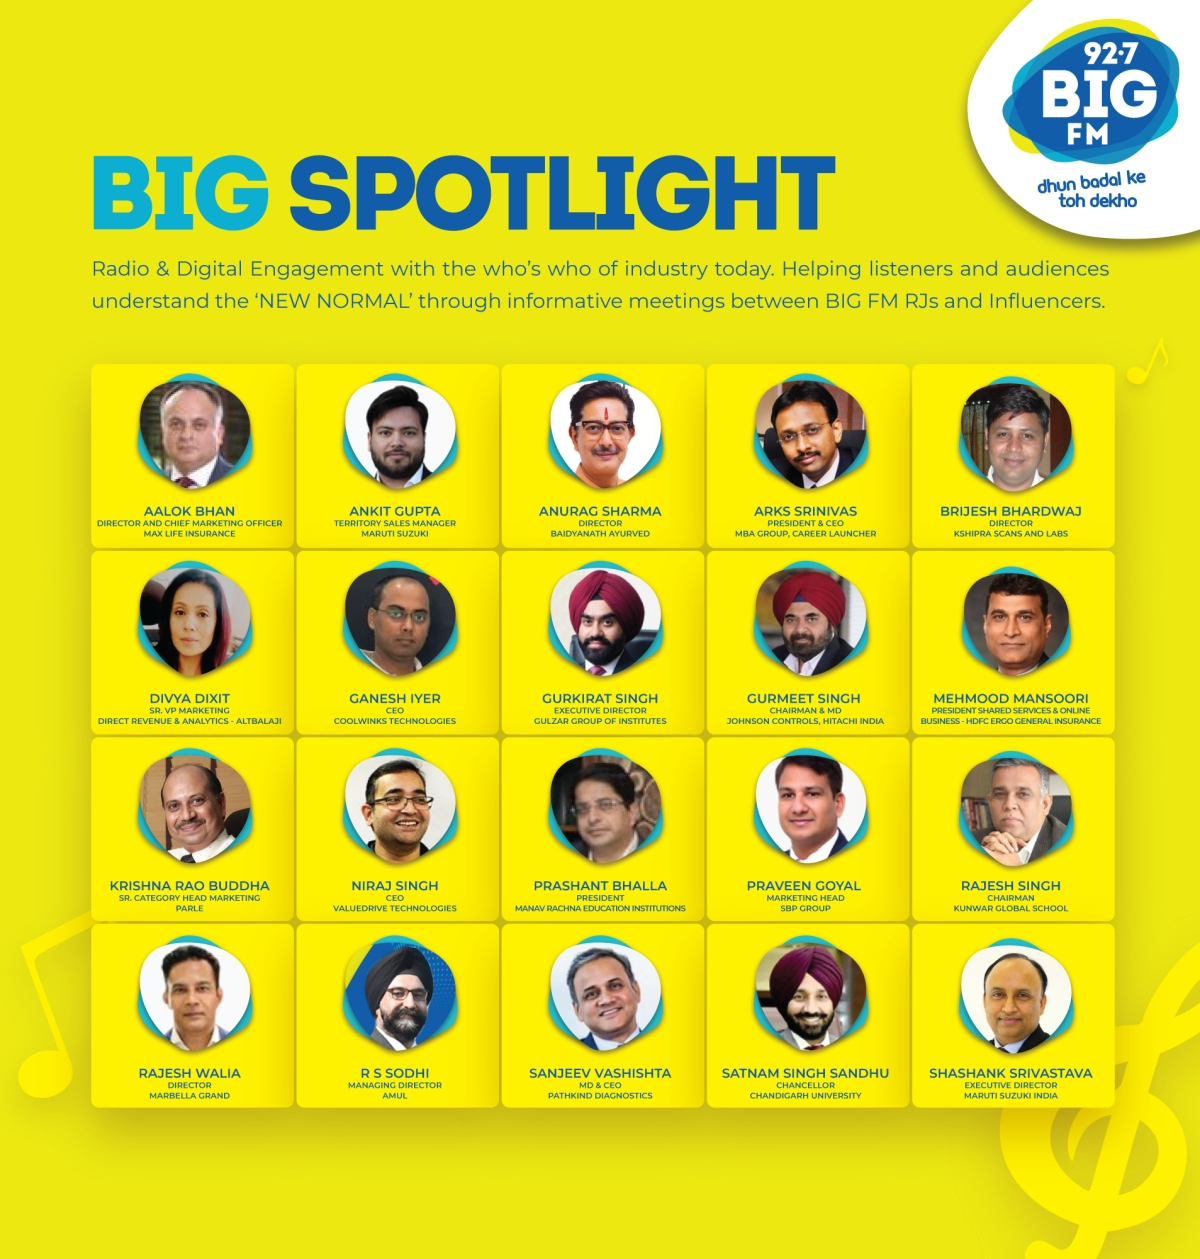 Big FM's 'Big Spotlight' sees exemplary leaders across industries inspire listeners during testing times